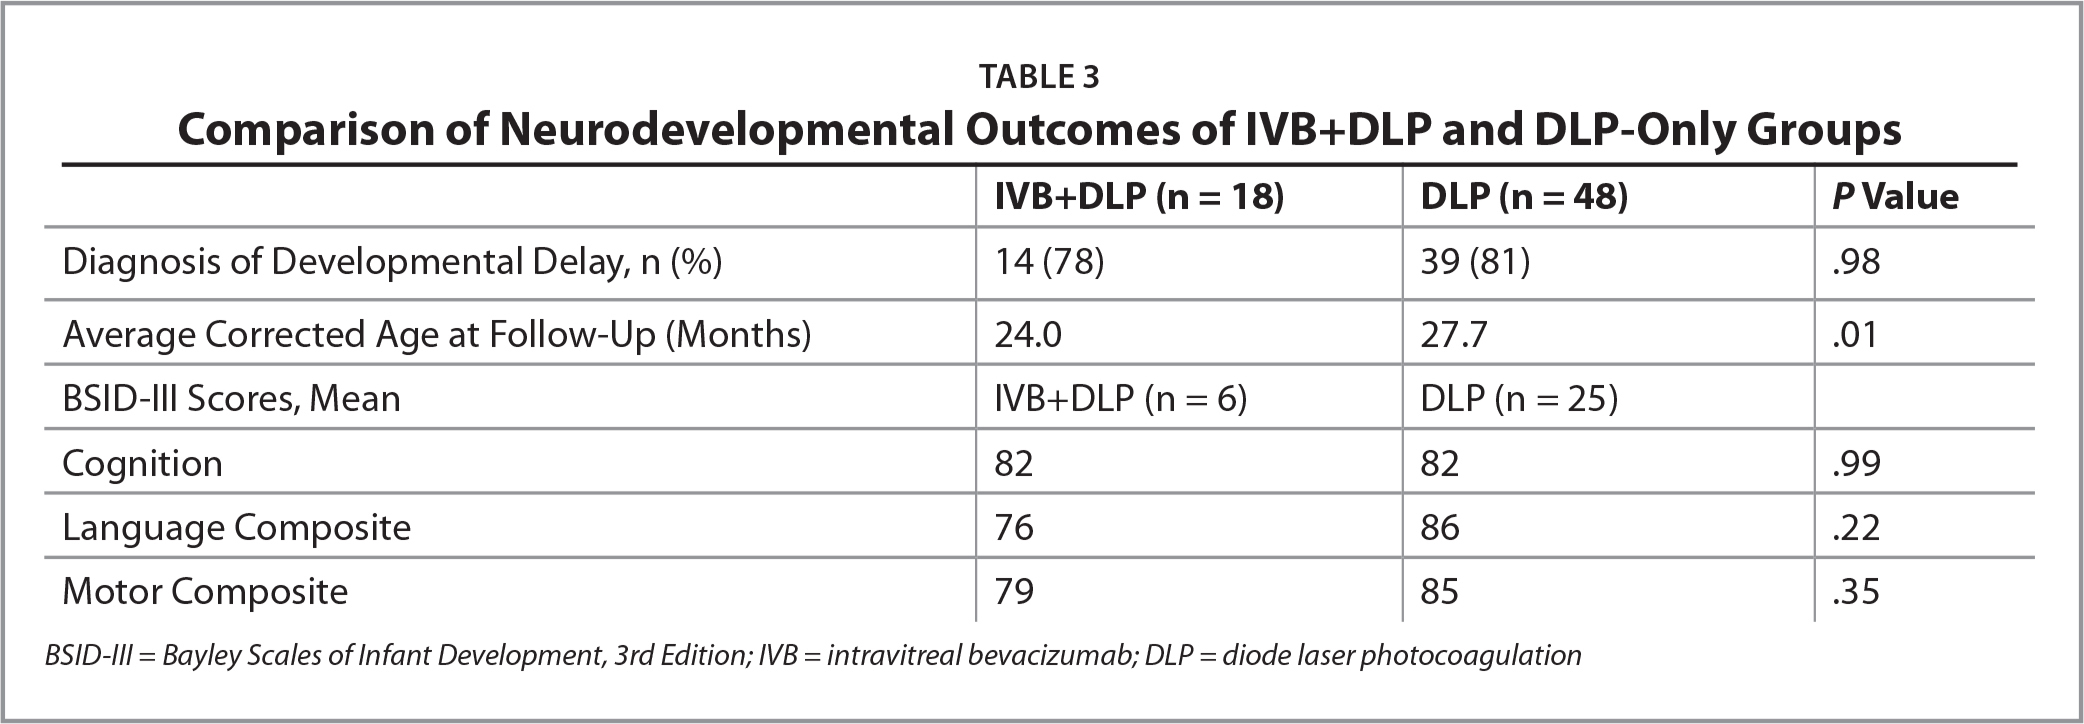 Comparison of Neurodevelopmental Outcomes of IVB+DLP and DLP-Only Groups